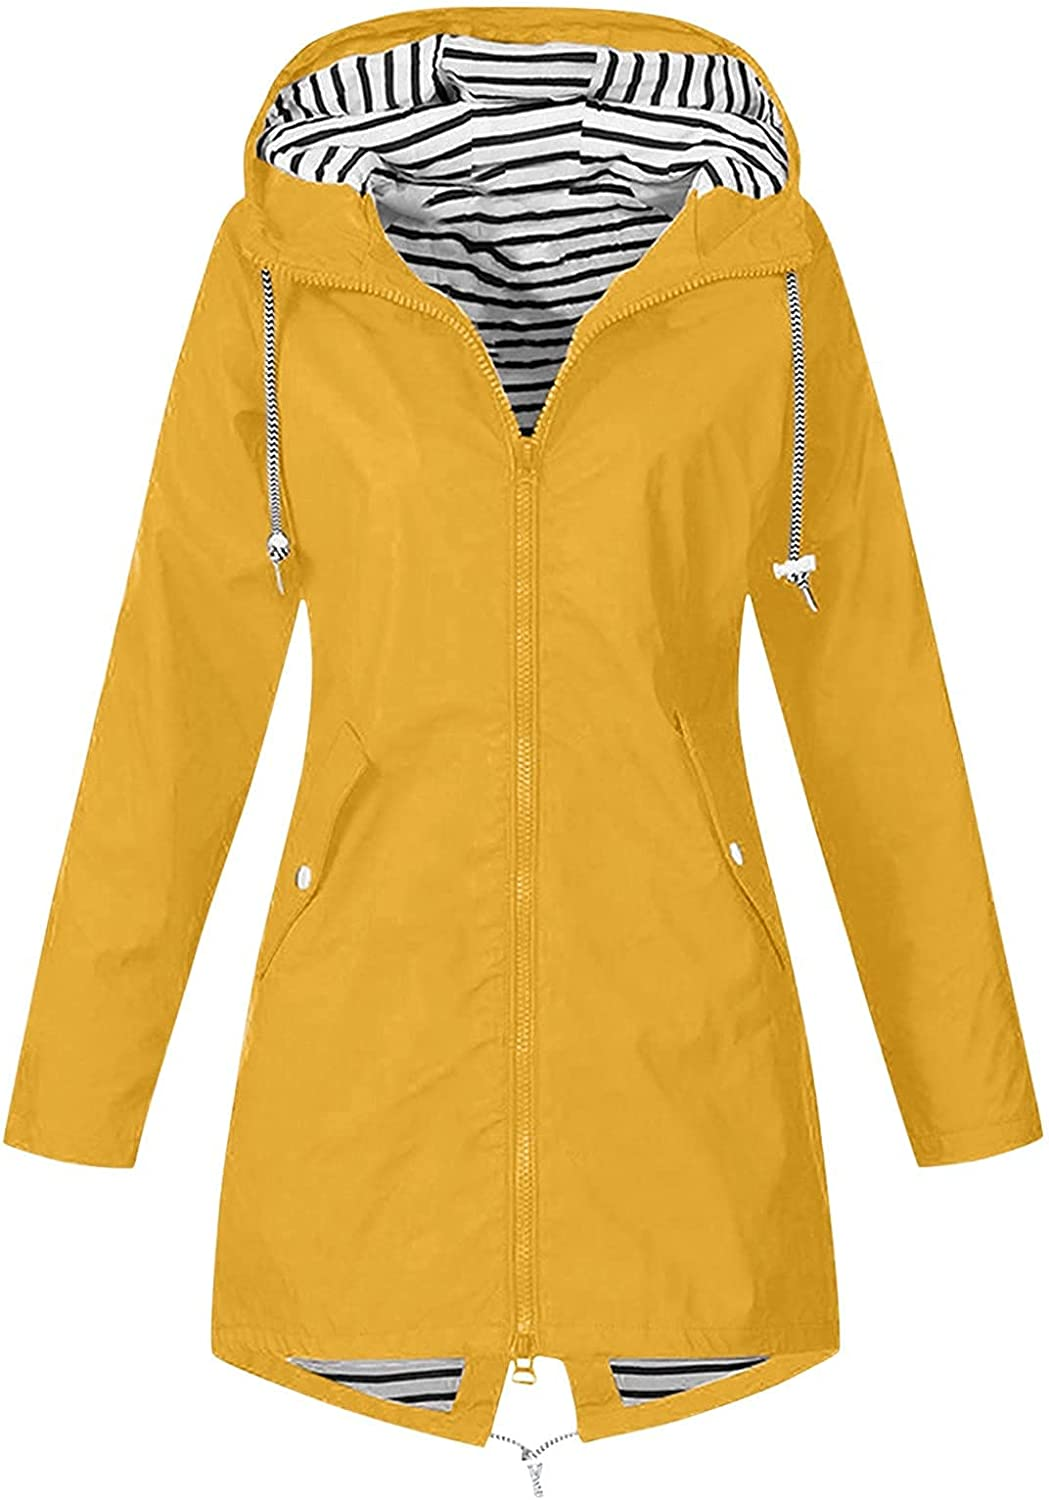 Women's Trench Coats,Women's Large Print Hooded Plus Size Raincoat Long Lined Waterproof and Windproof Outdoor Travel Jacket